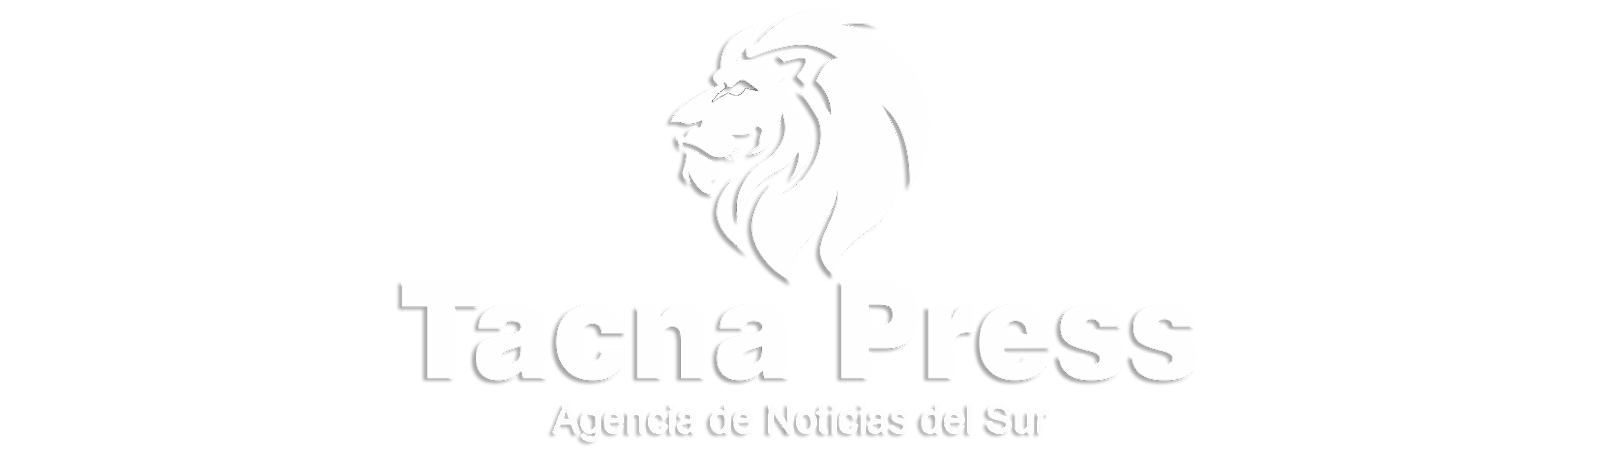 Tacna Press